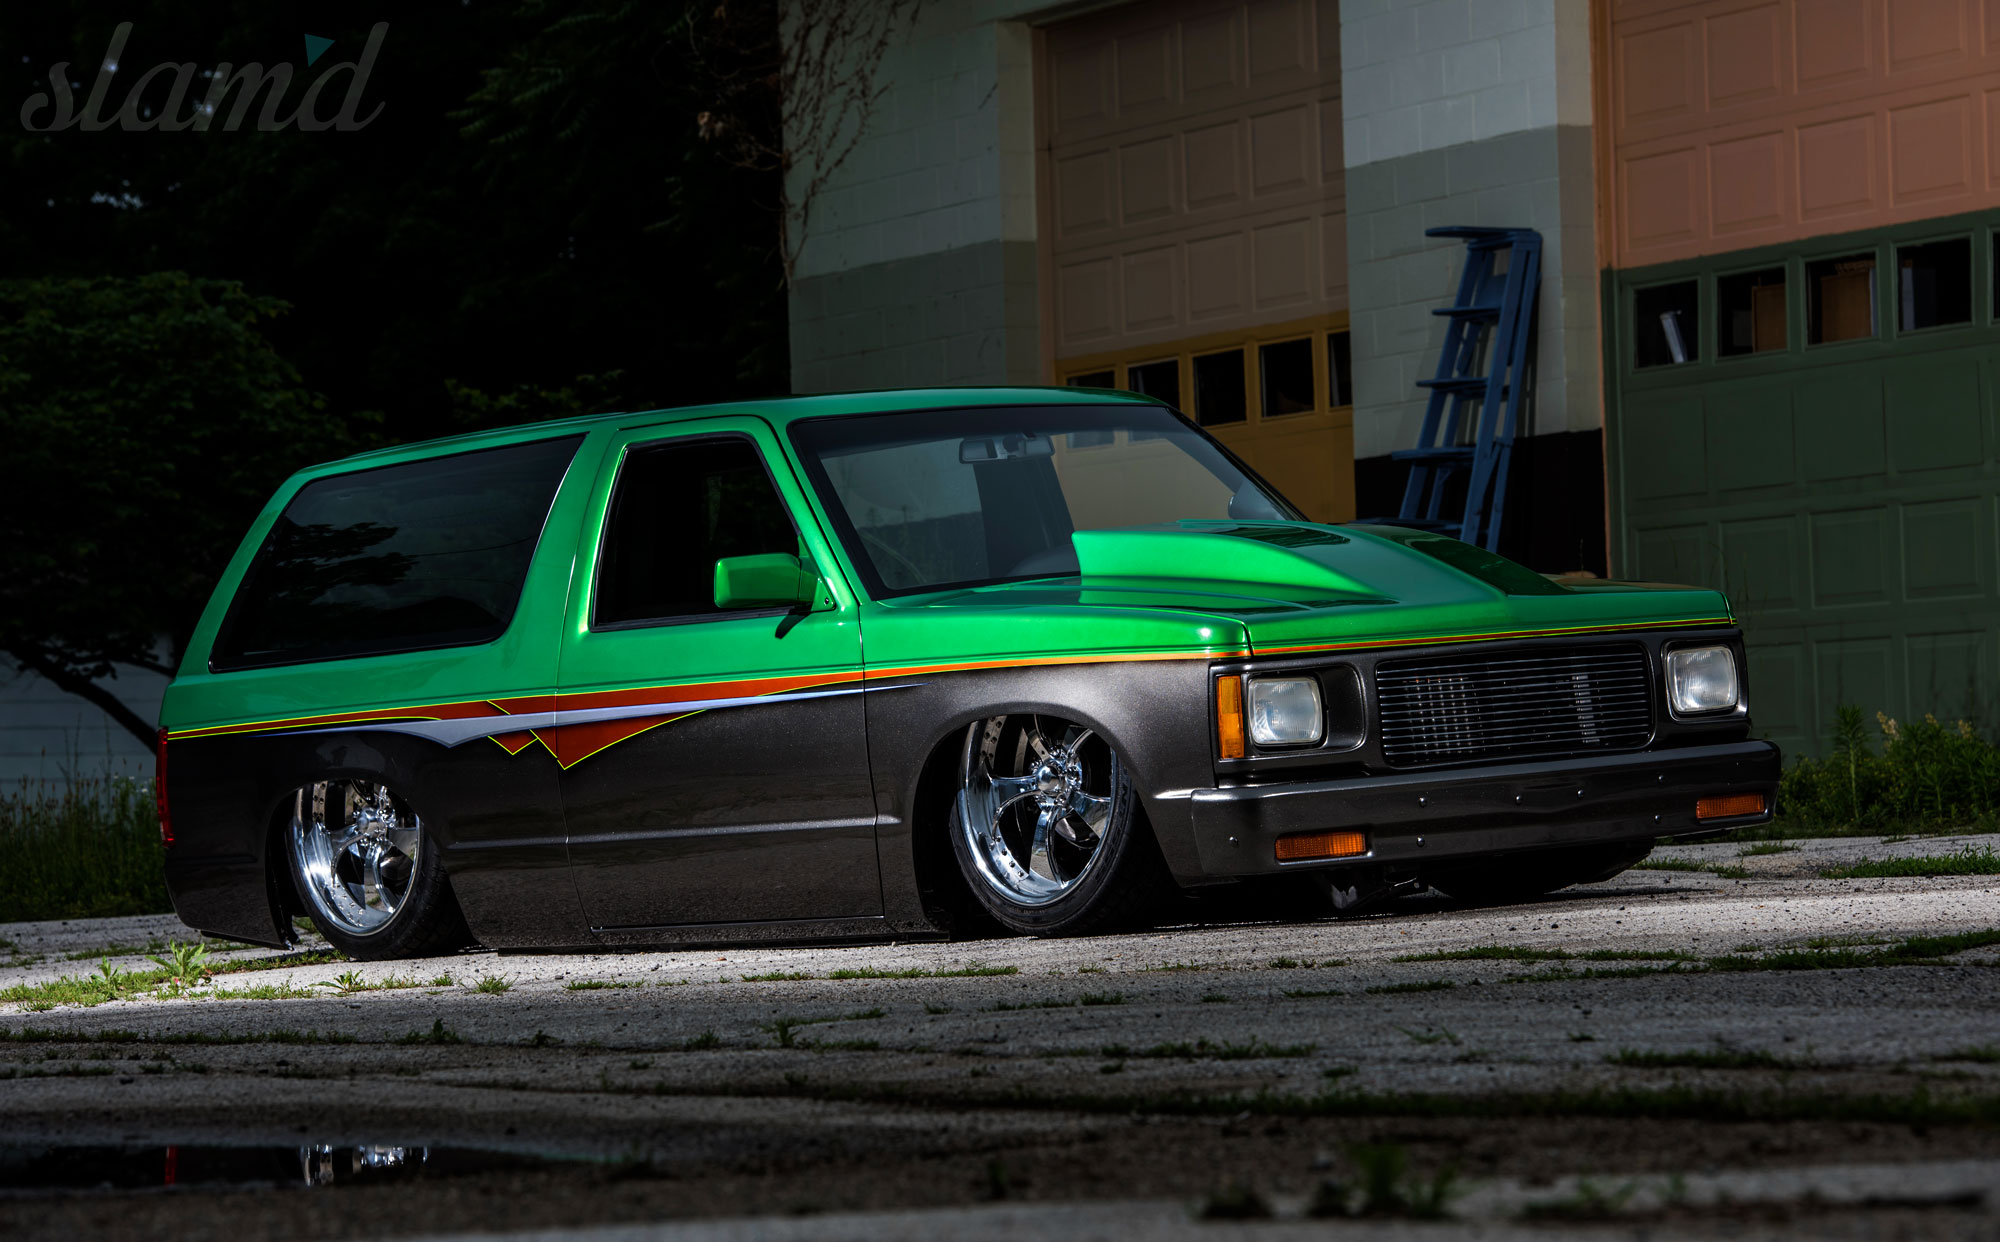 Brotherly Duo: Bodyshop Built SRT-10 & S10 Blazer – Slam'd Mag